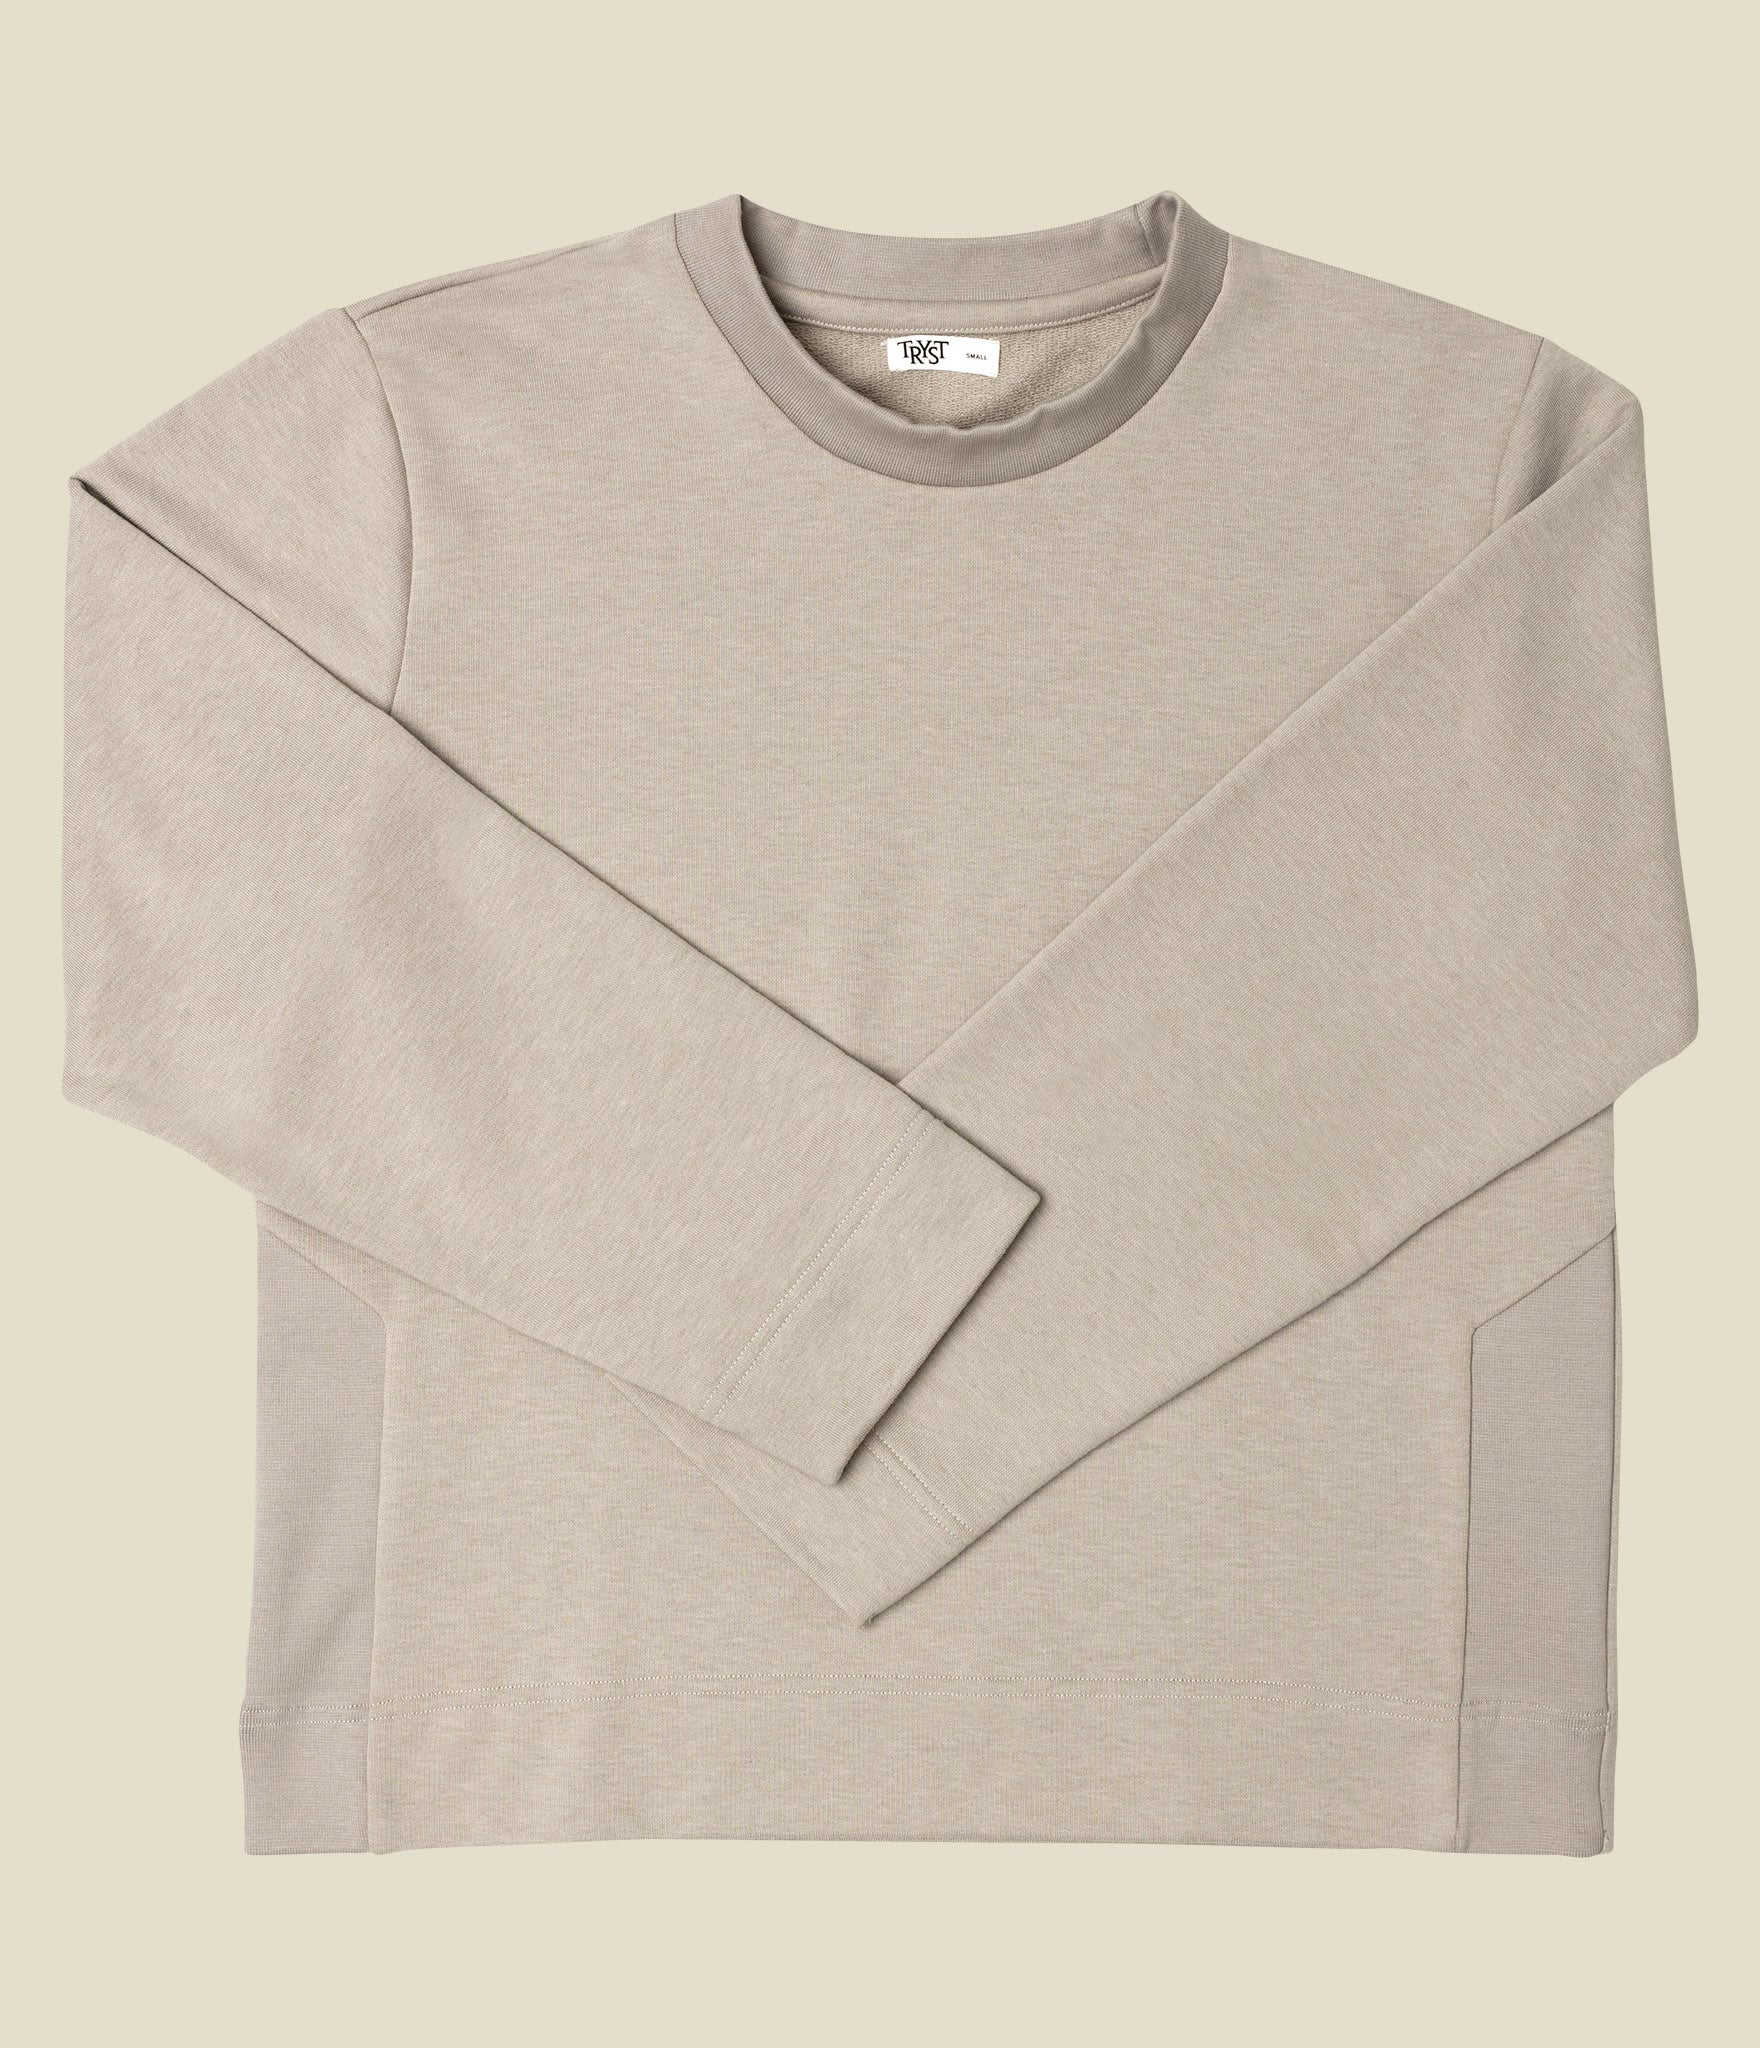 Omaha Sweater </br>Beige